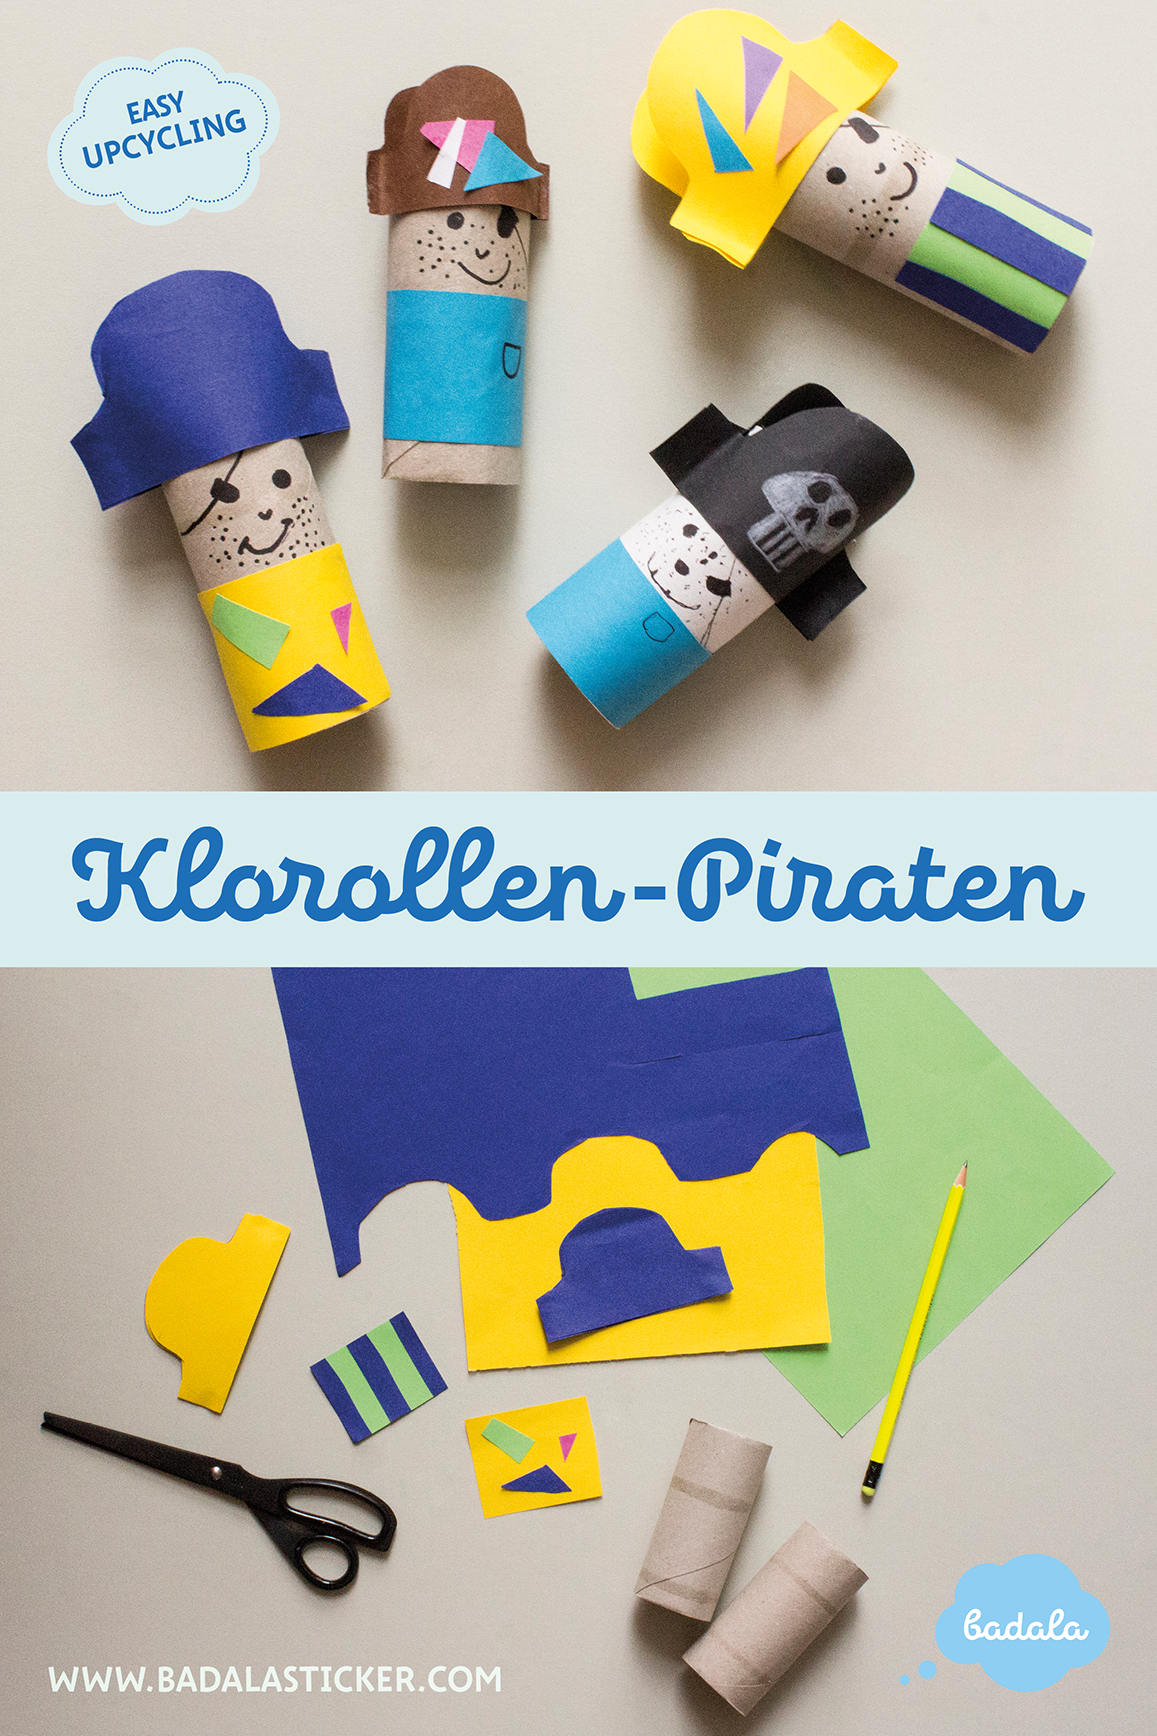 Bastelideen Klopapierrollen Klorollen Piraten In Sicht Craft Diy Recycle Manualidades